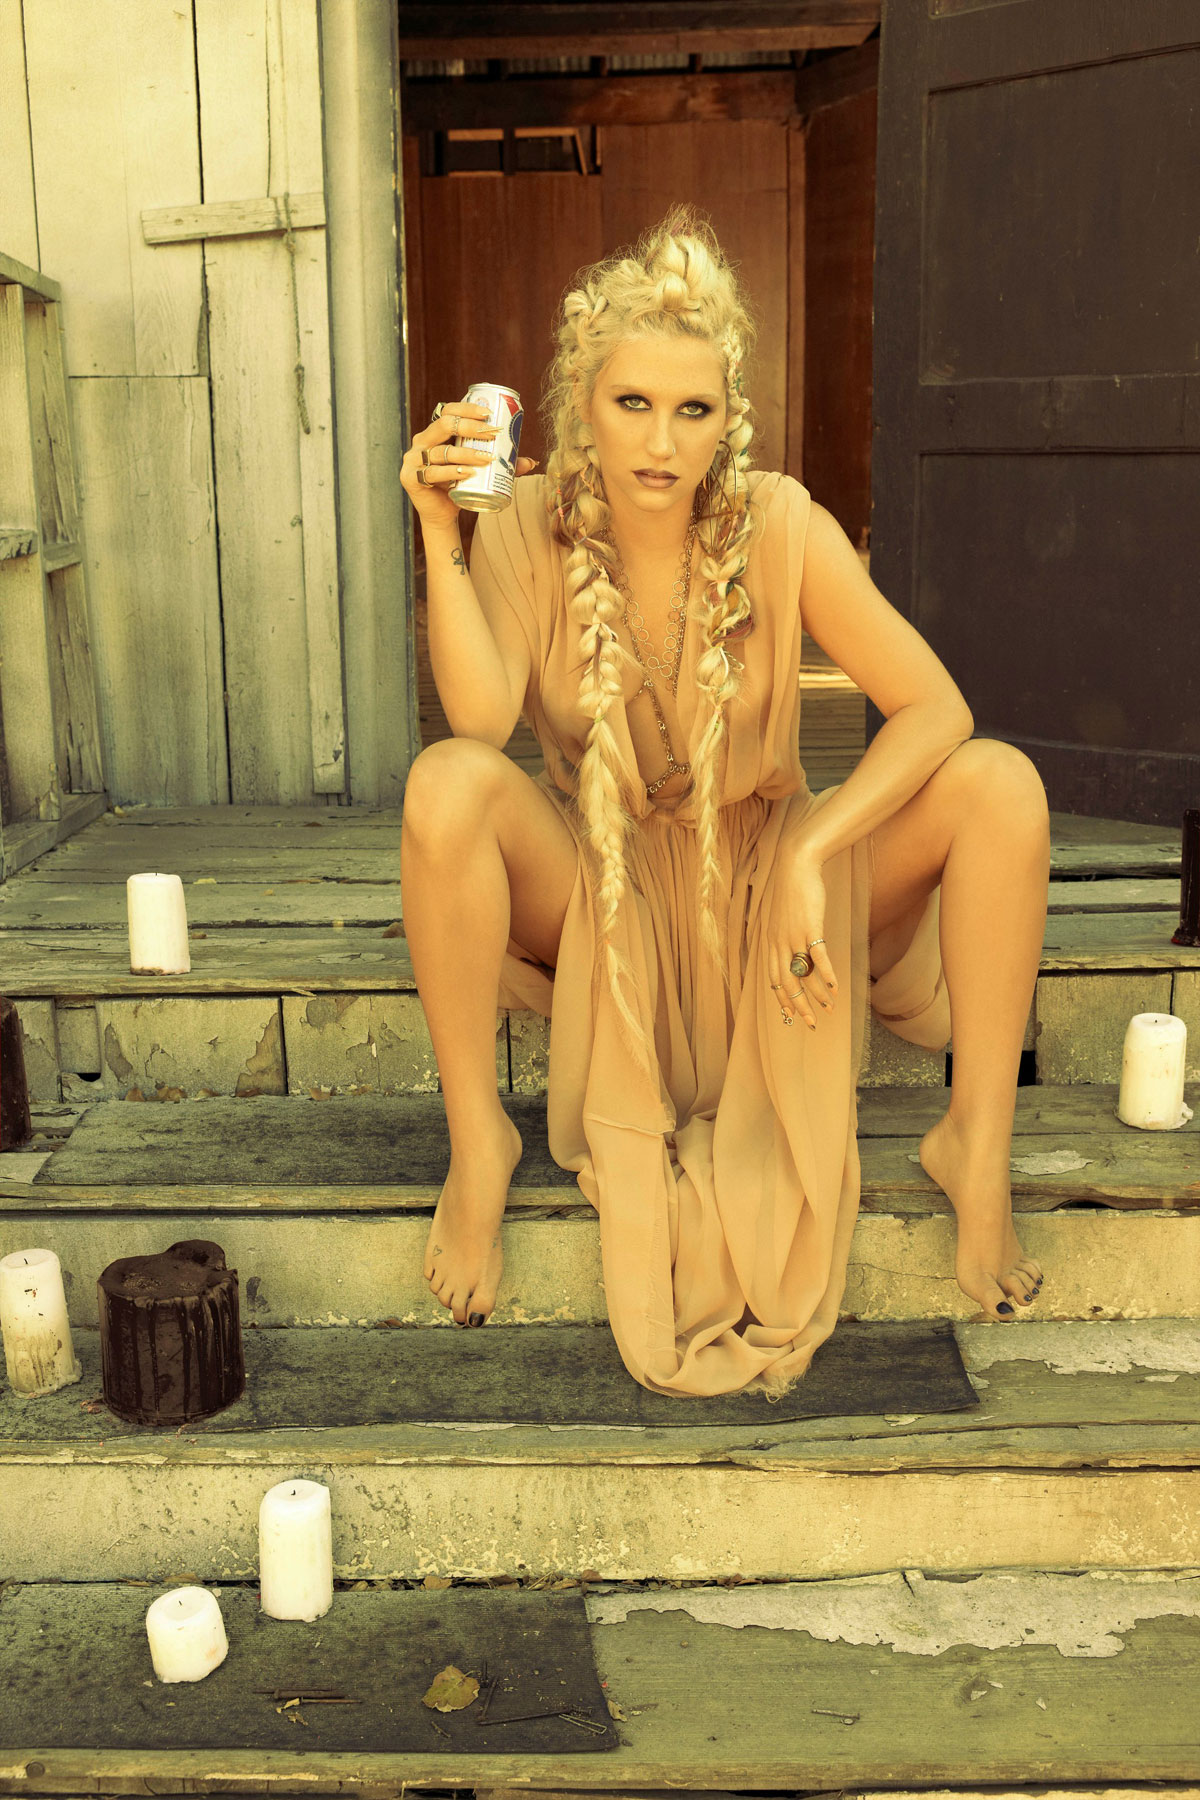 Kesha Sebert In Yu Tsai Photoshoot For Her New Album